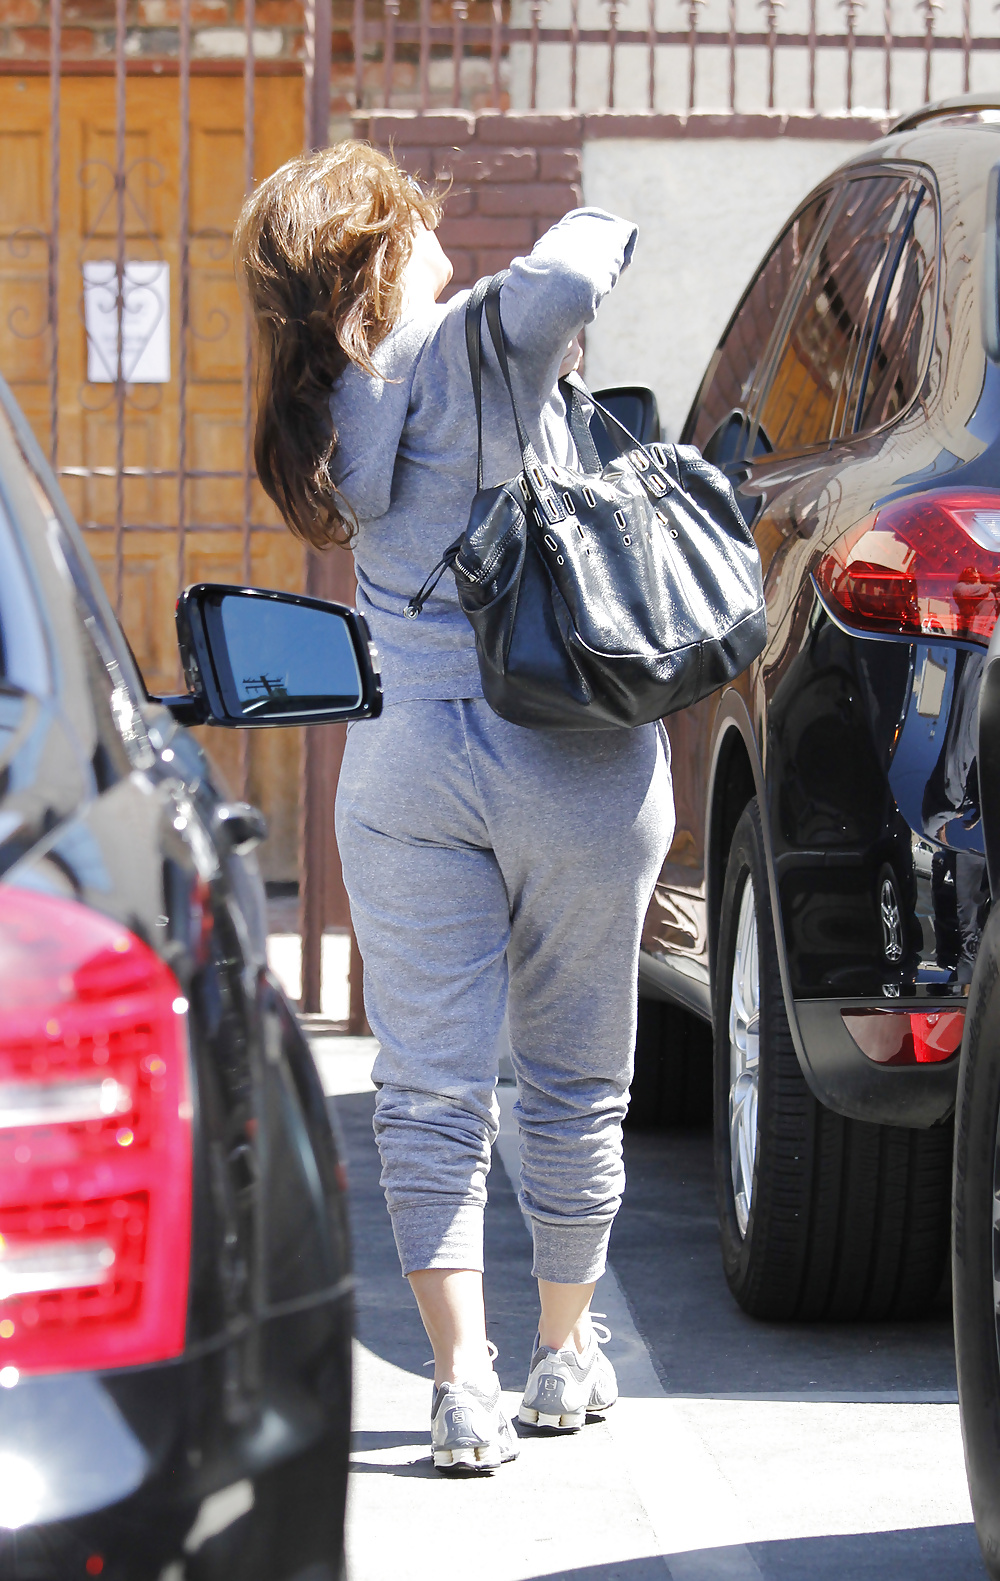 Leah remini butt is nice